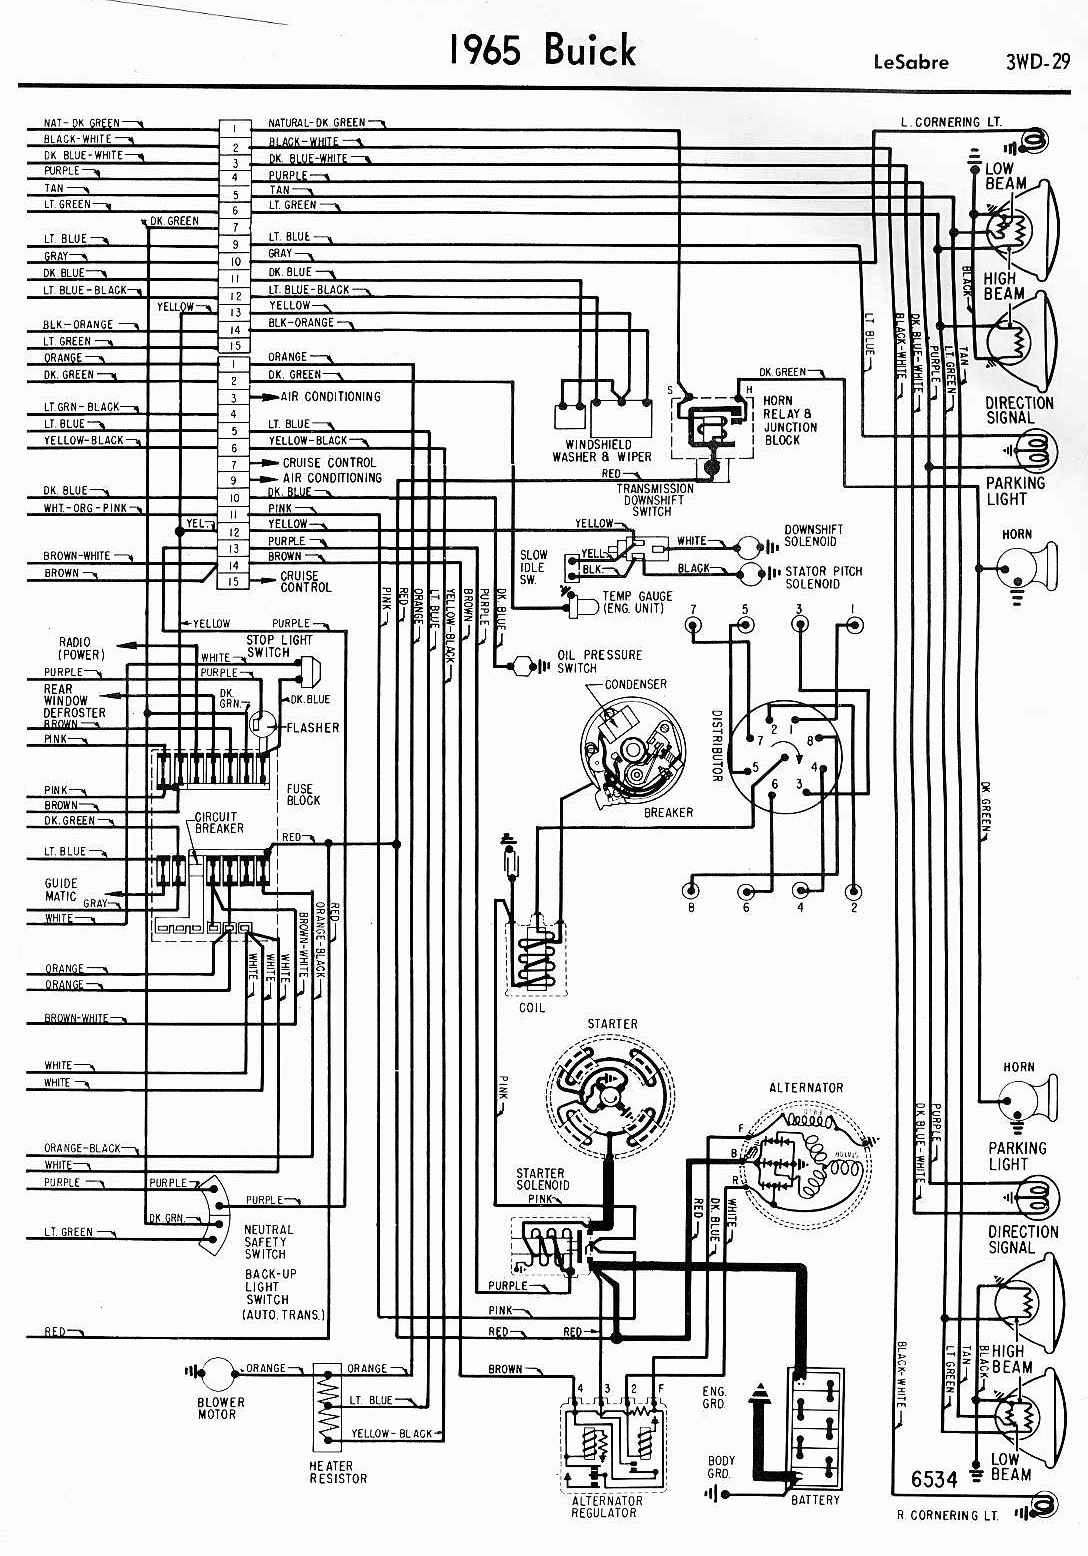 1965 Buick Wiring Diagram Not Lossing 2011 Regal 1967 Lesabre Diagrams Third Level Rh 7 1 16 Jacobwinterstein Com